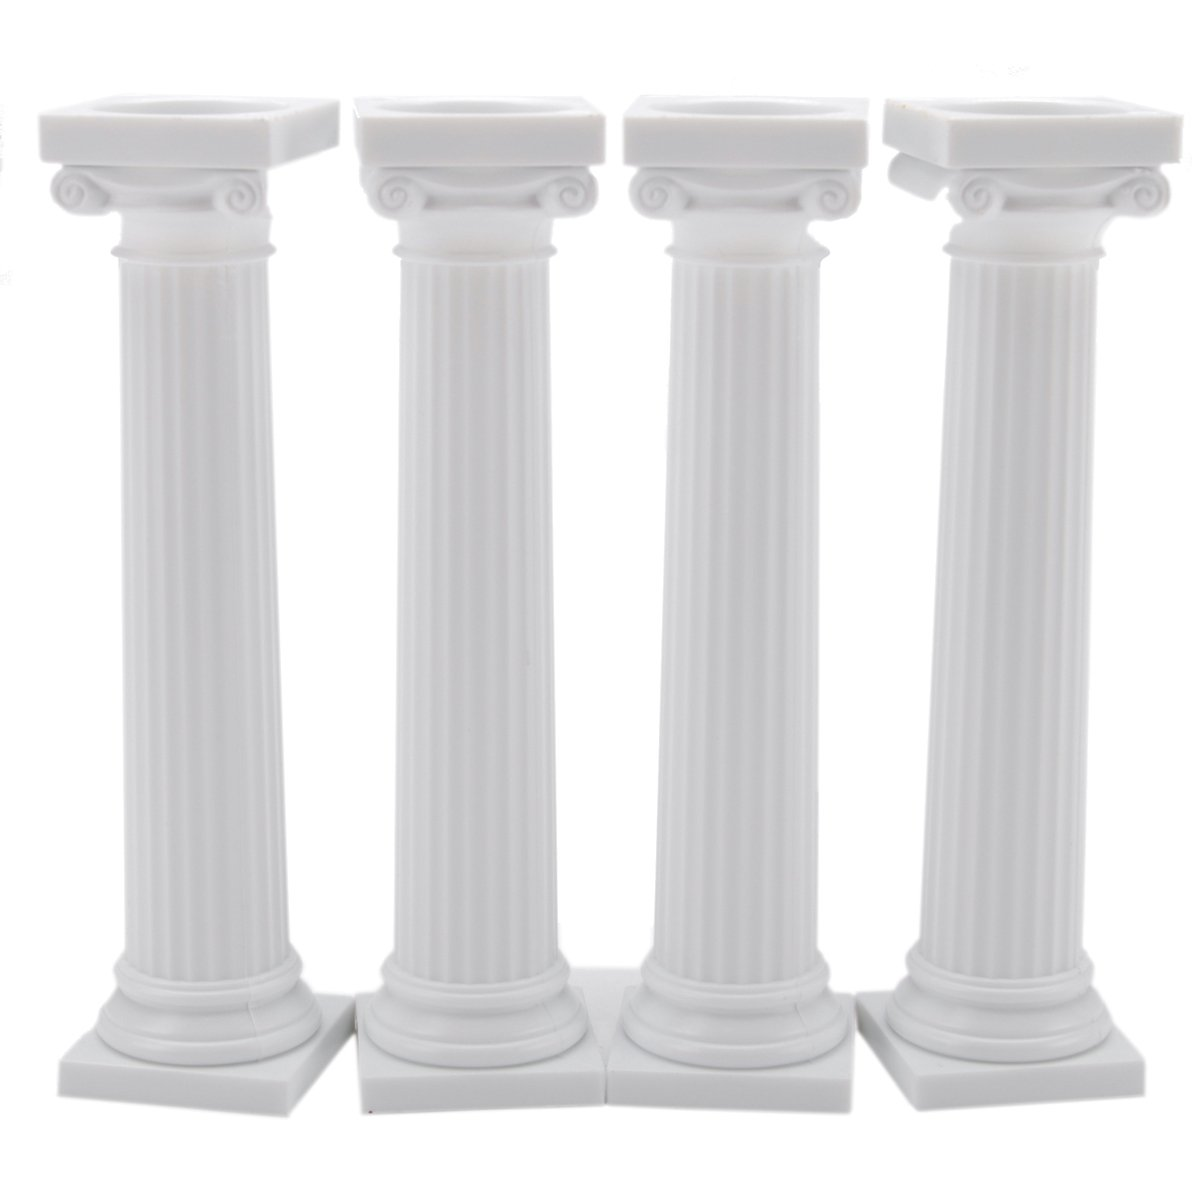 How To Stack Wedding Cakes With Pillars